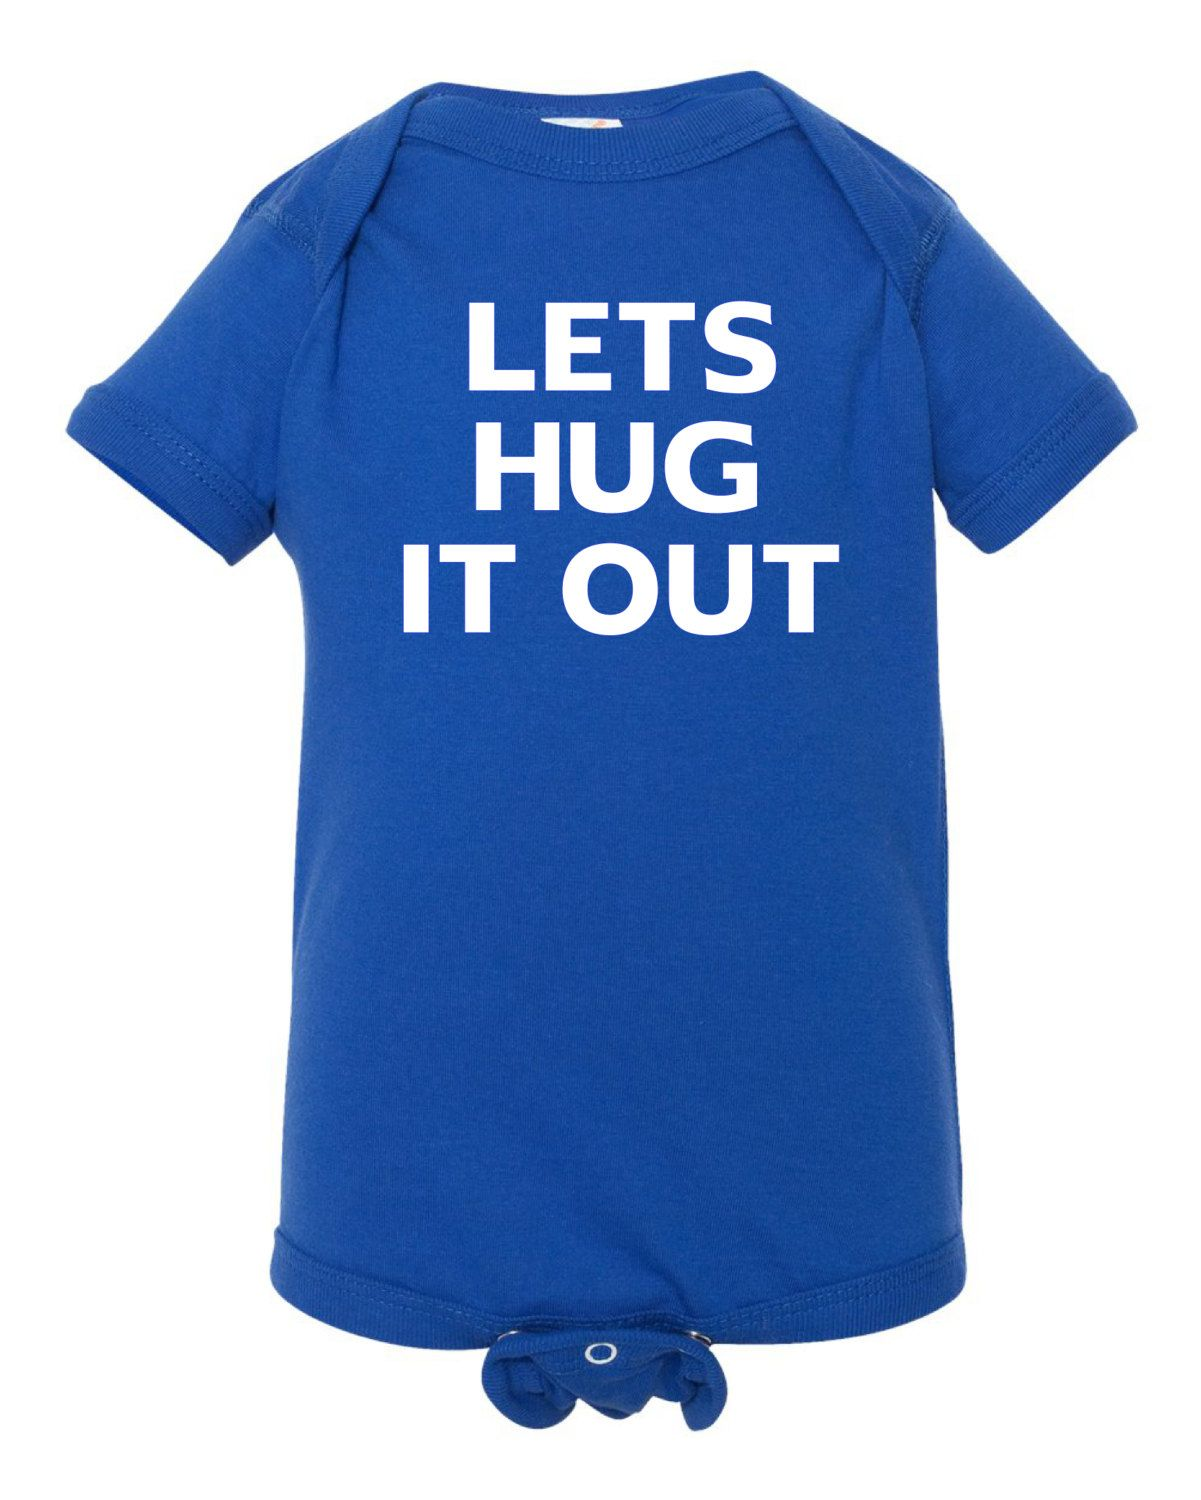 Lets Hug It Out, Creeper, Baby Creeper, Funny Baby Items,Babies, Baby  Clothing,Baby Body Suit,Funny Creeper by LilGroovysKids on Etsy